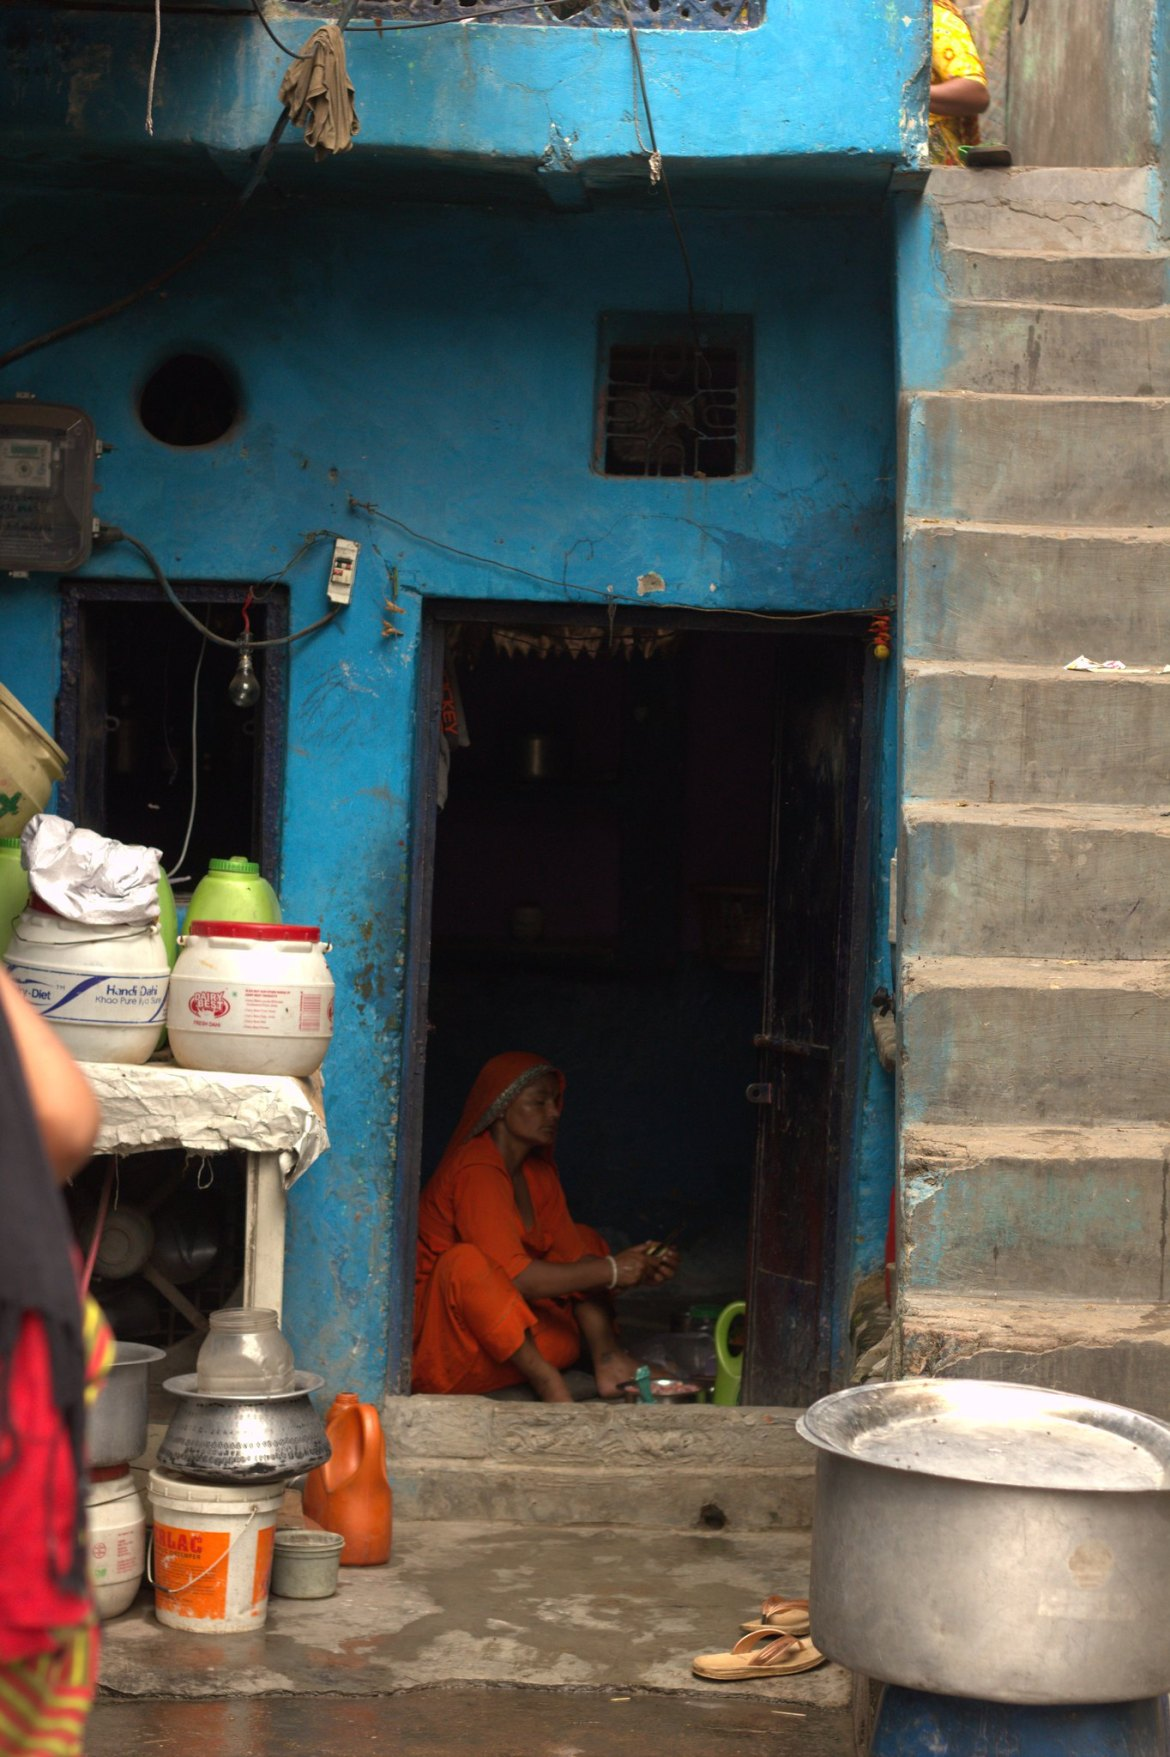 A woman cooks in a flimsy hut in Kathputli Colony